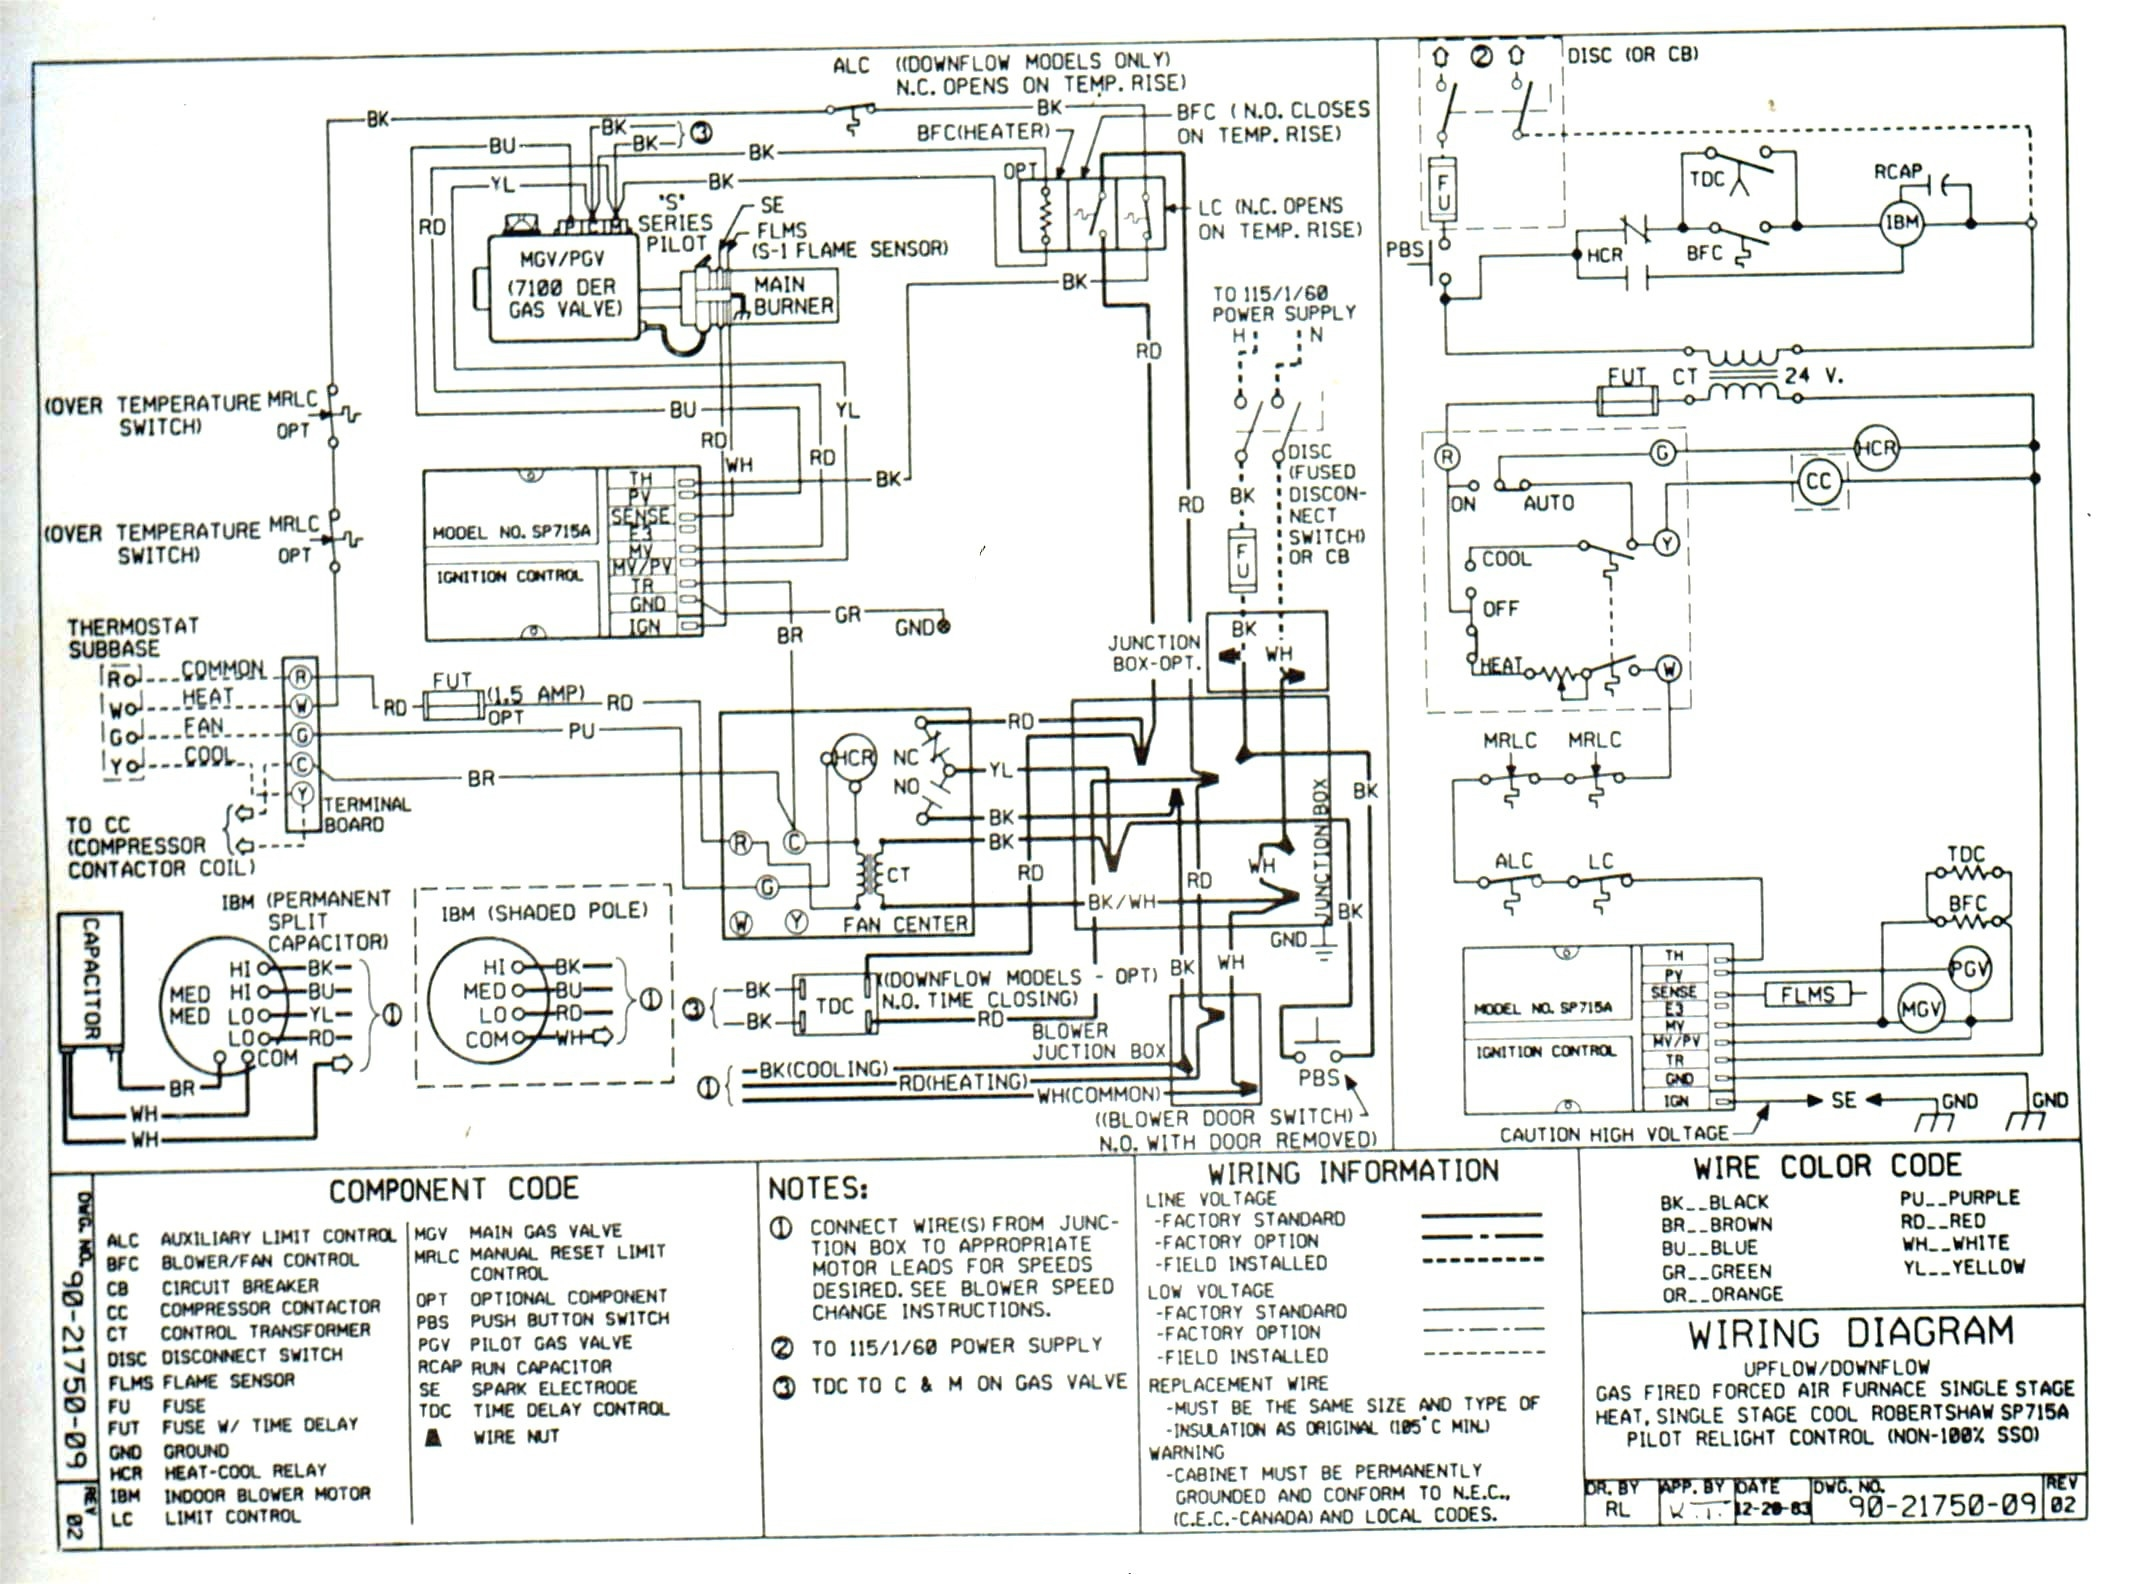 intertherm ac unit wiring diagram Collection-Heil Ac Wiring Diagram Fresh Intertherm Diagram Electric Wiring Furnace A Wiring Diagram 11-a